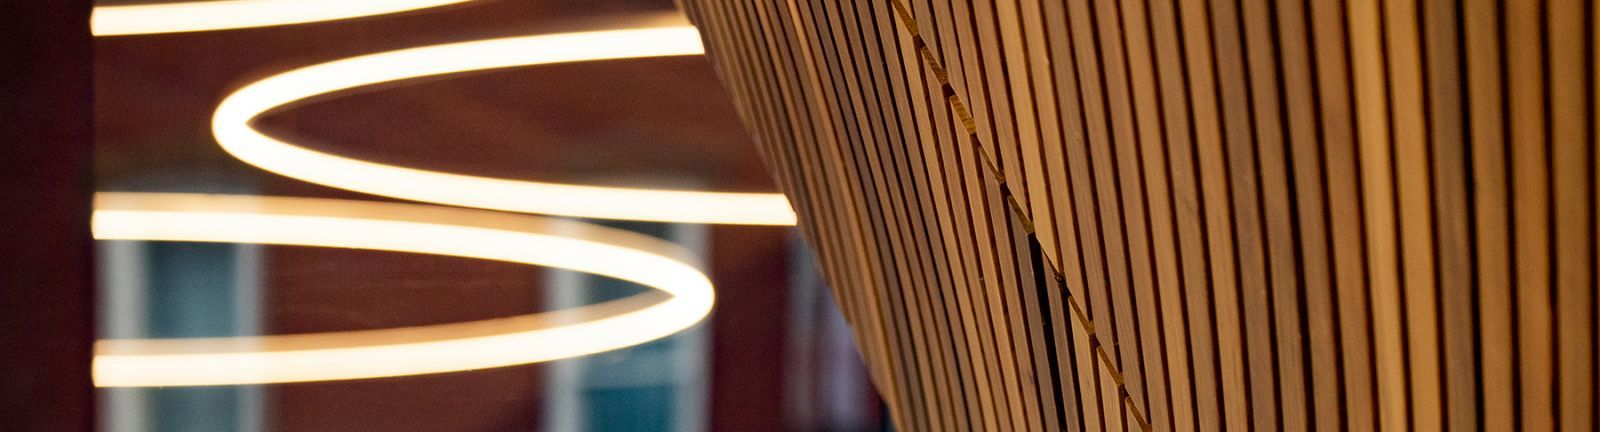 Abstract of lighting and wood elements in Temple's Charles Library.